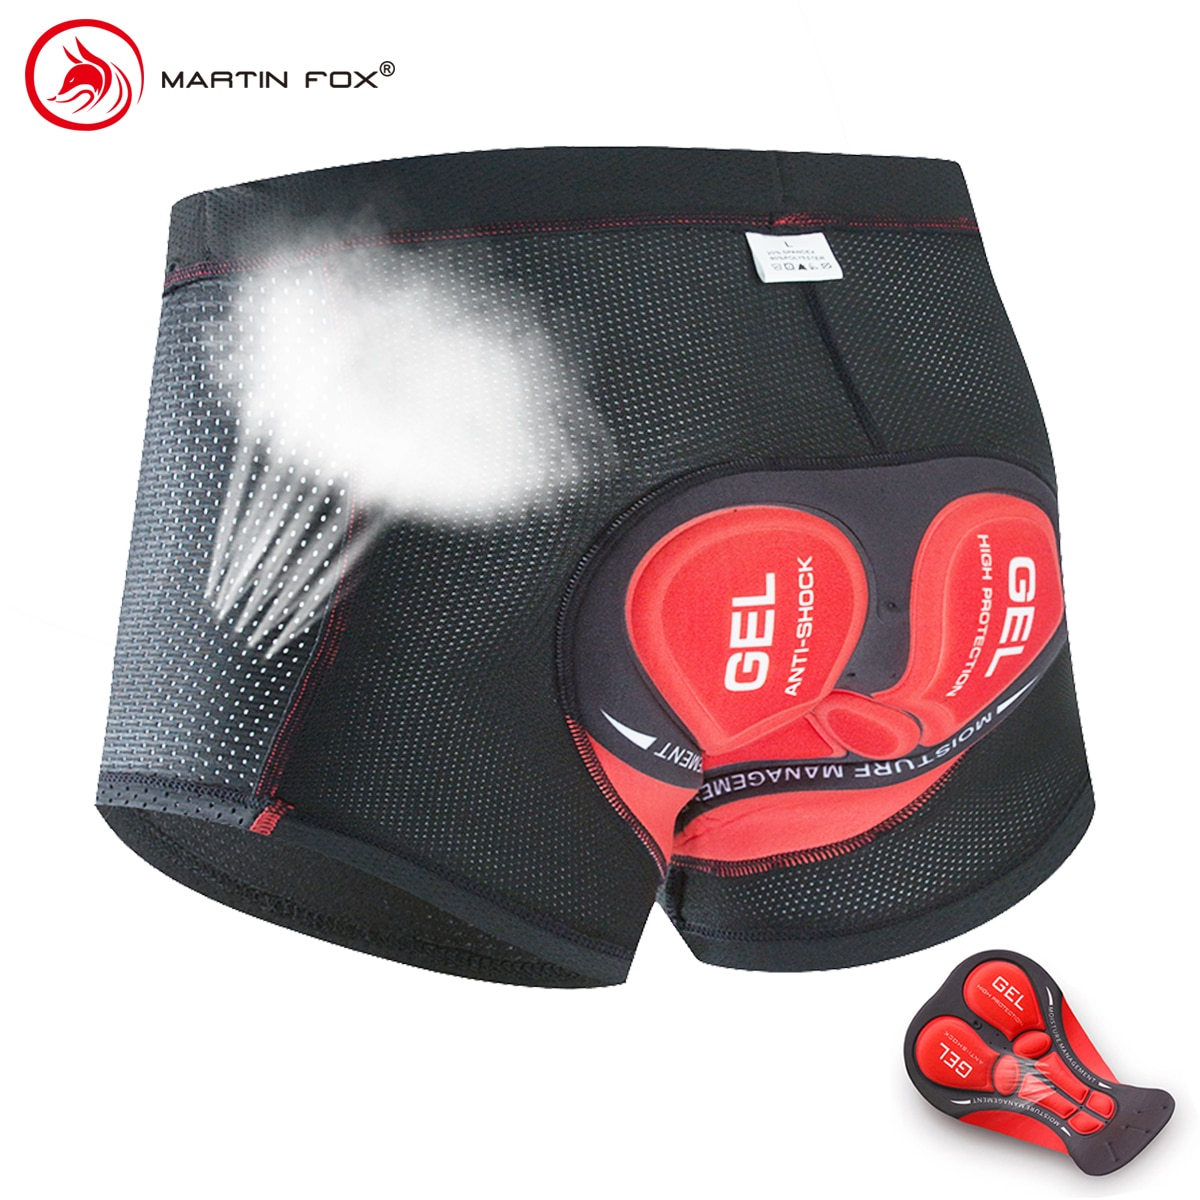 Upgrade Cycling Shorts Cycling Underwear Pro 5D Gel Pad Shockproof Cycling Underpant Bicycle Shorts Bike Underwear martin fox